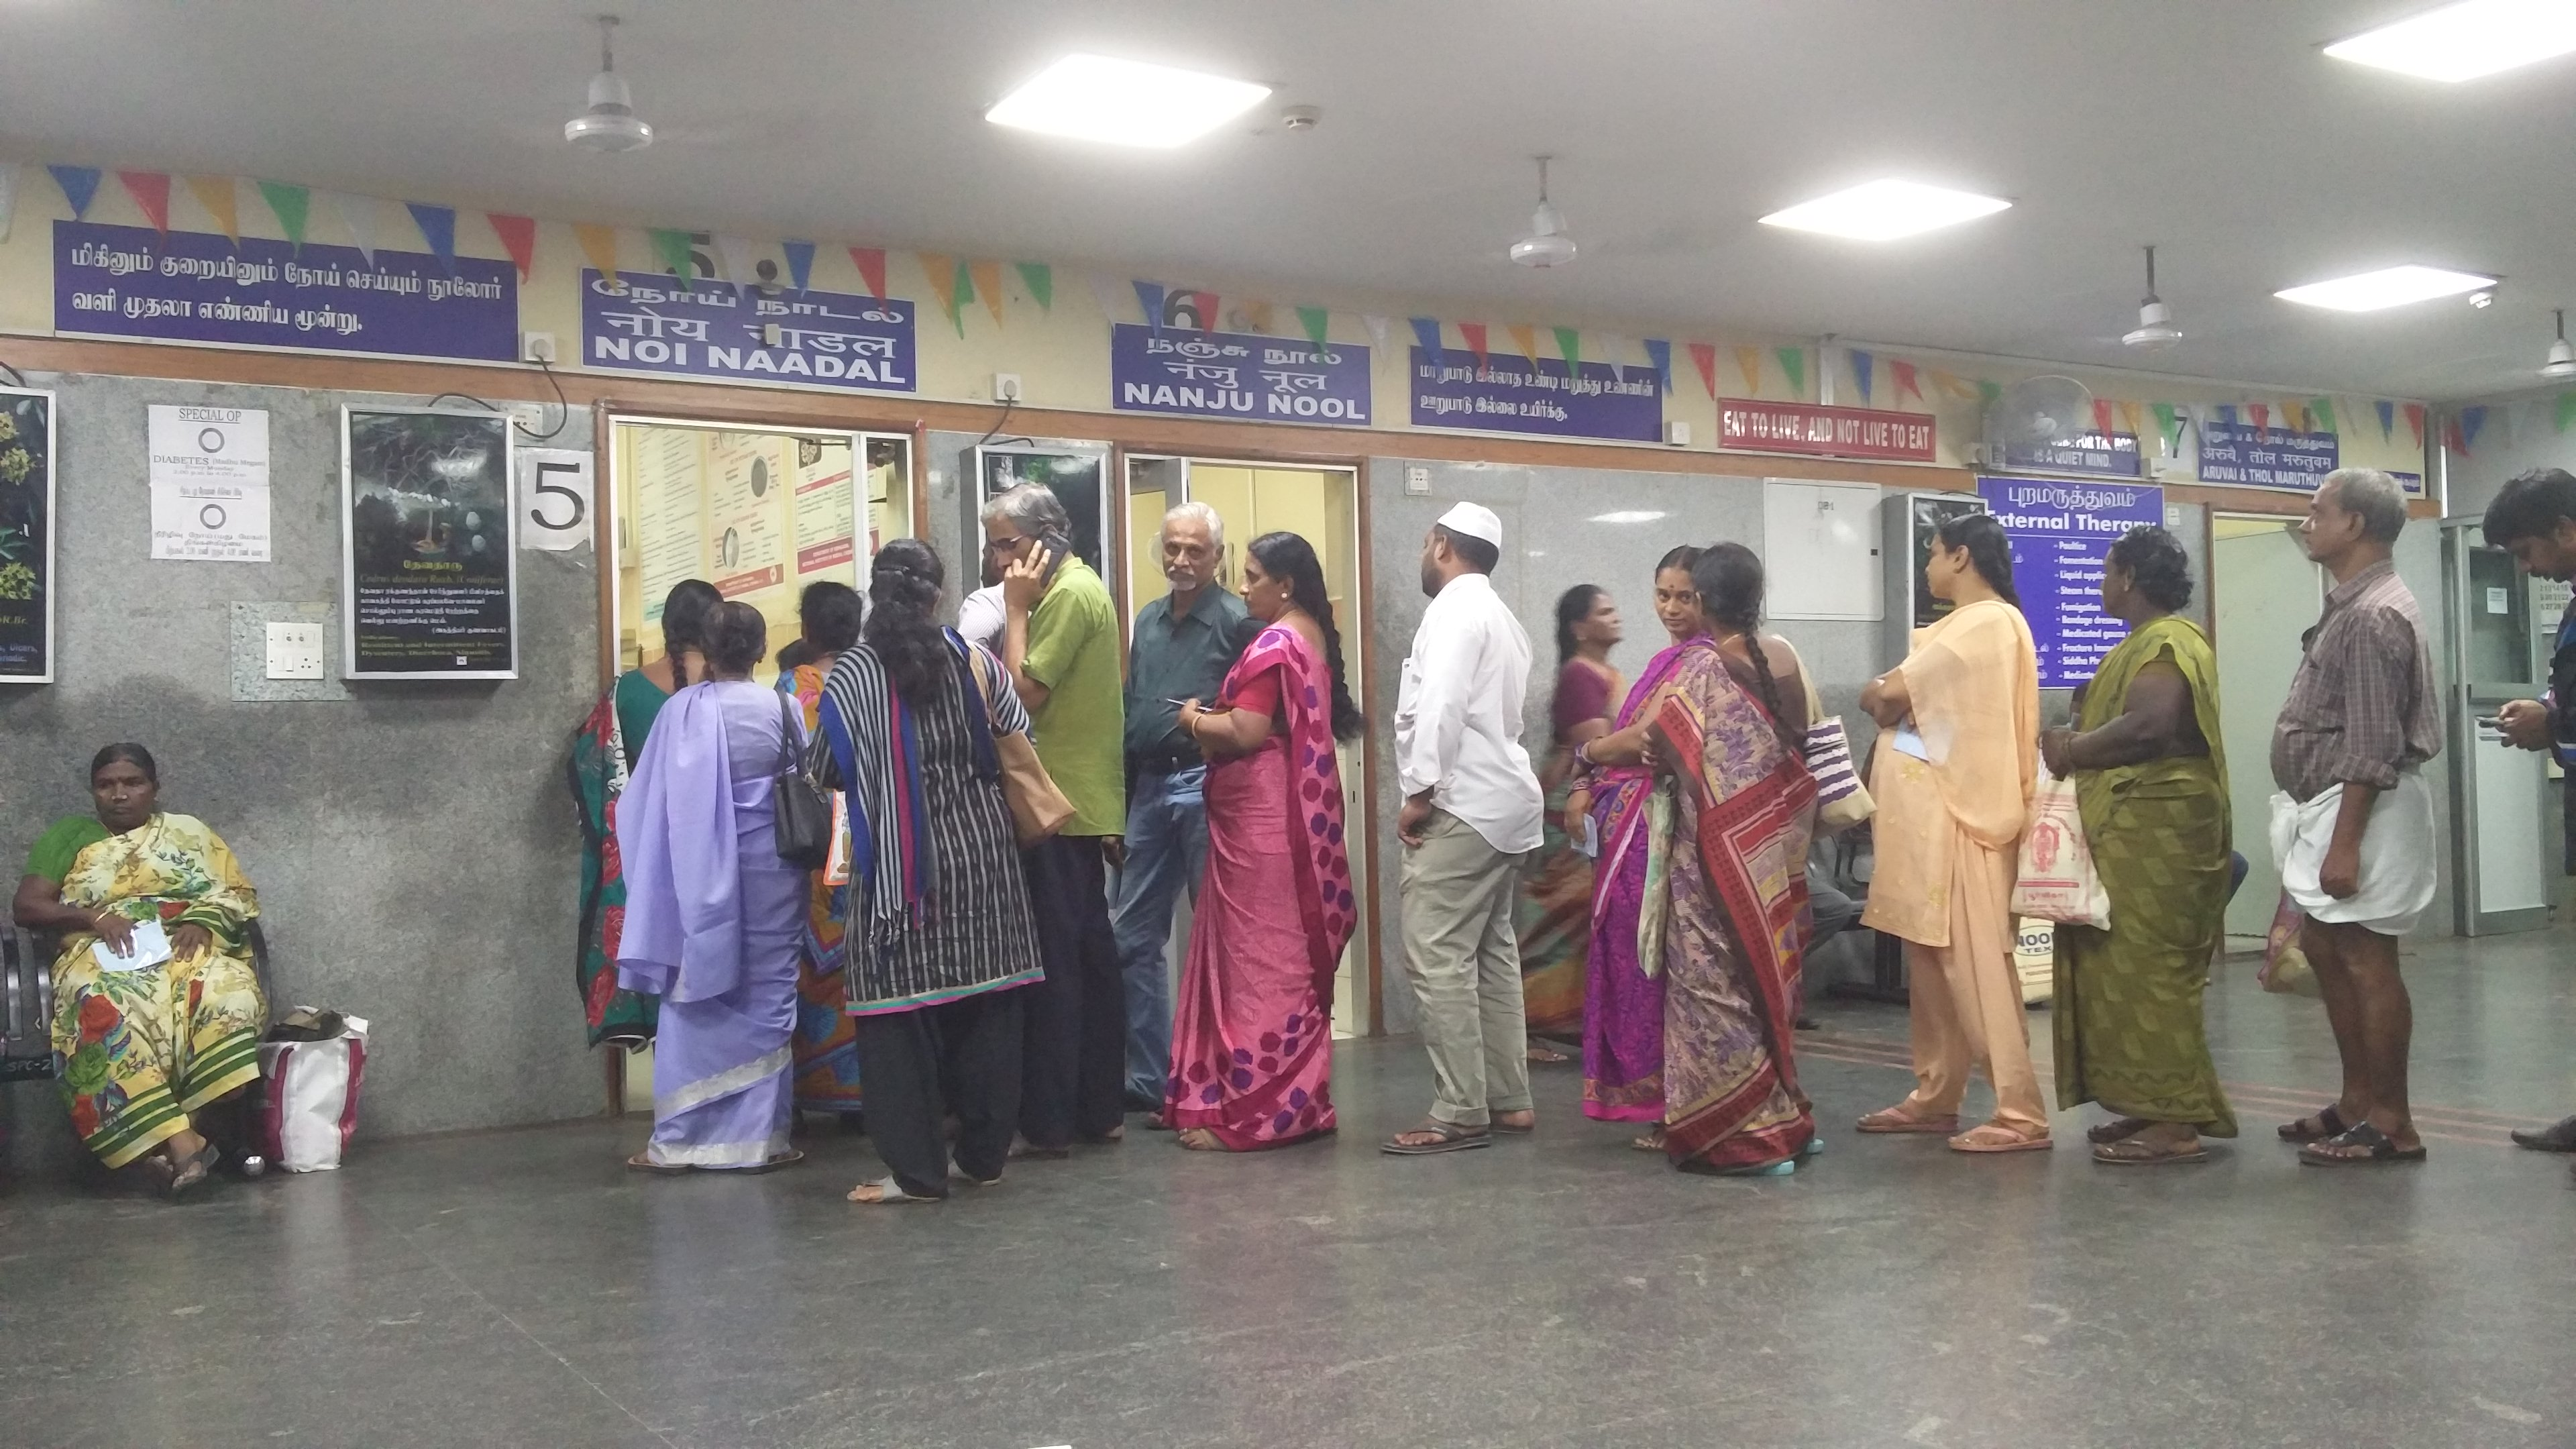 Patients line up at the noi naadal or pathology counter at the National Institute of Siddha. (Photo: Vinita Govindarajan)